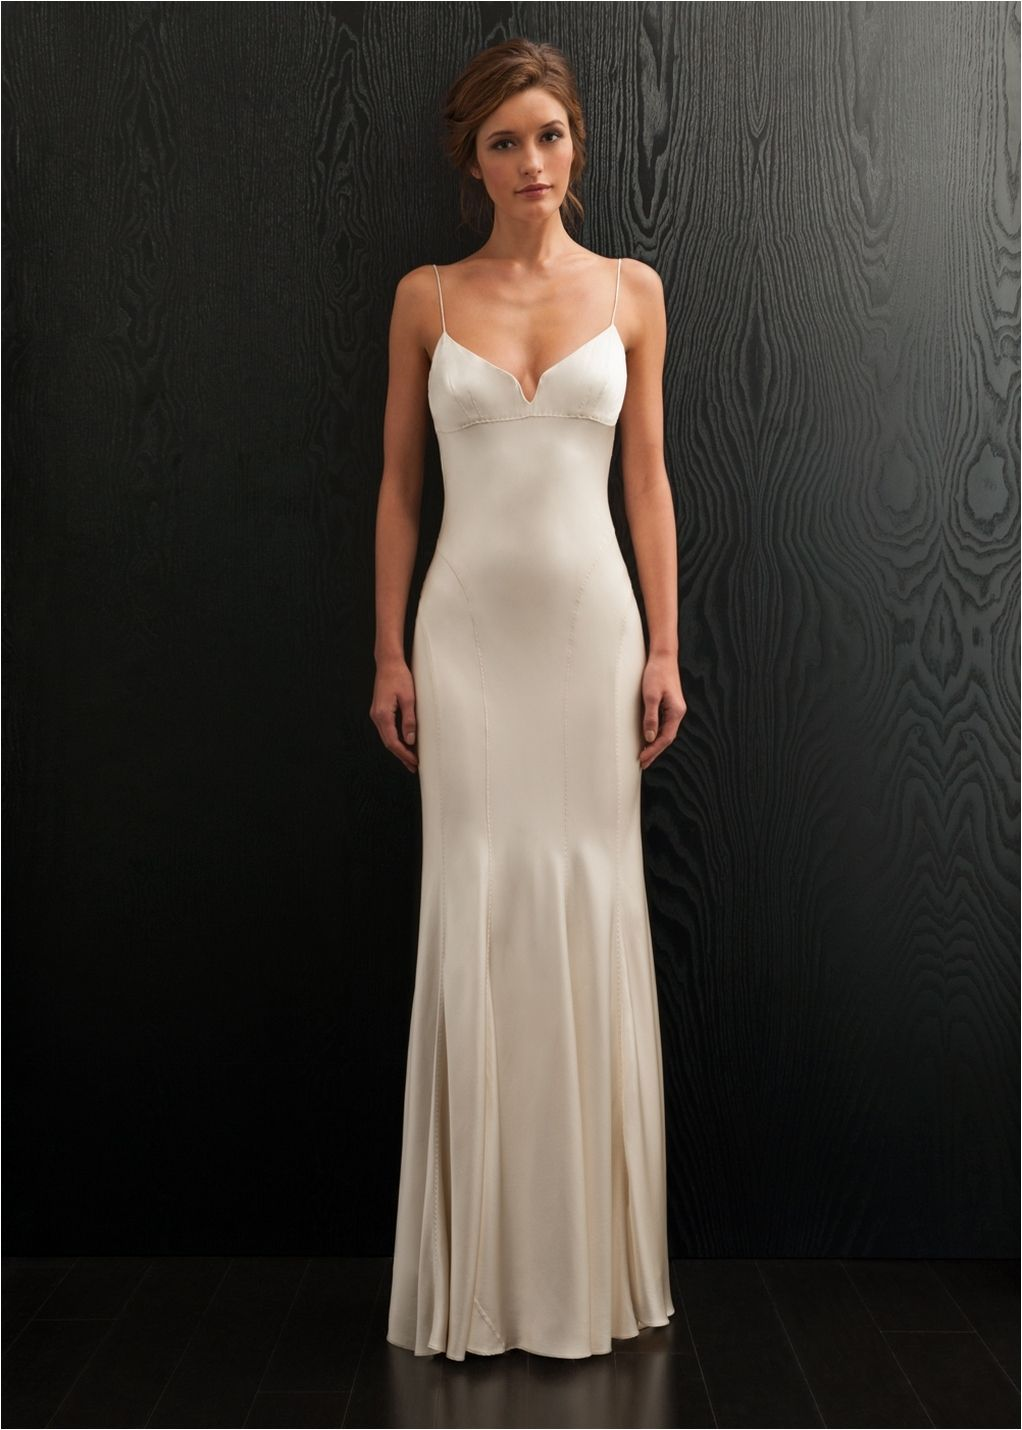 160 Simple Summer Wedding Dresses 2017 Trends and Ideas ...